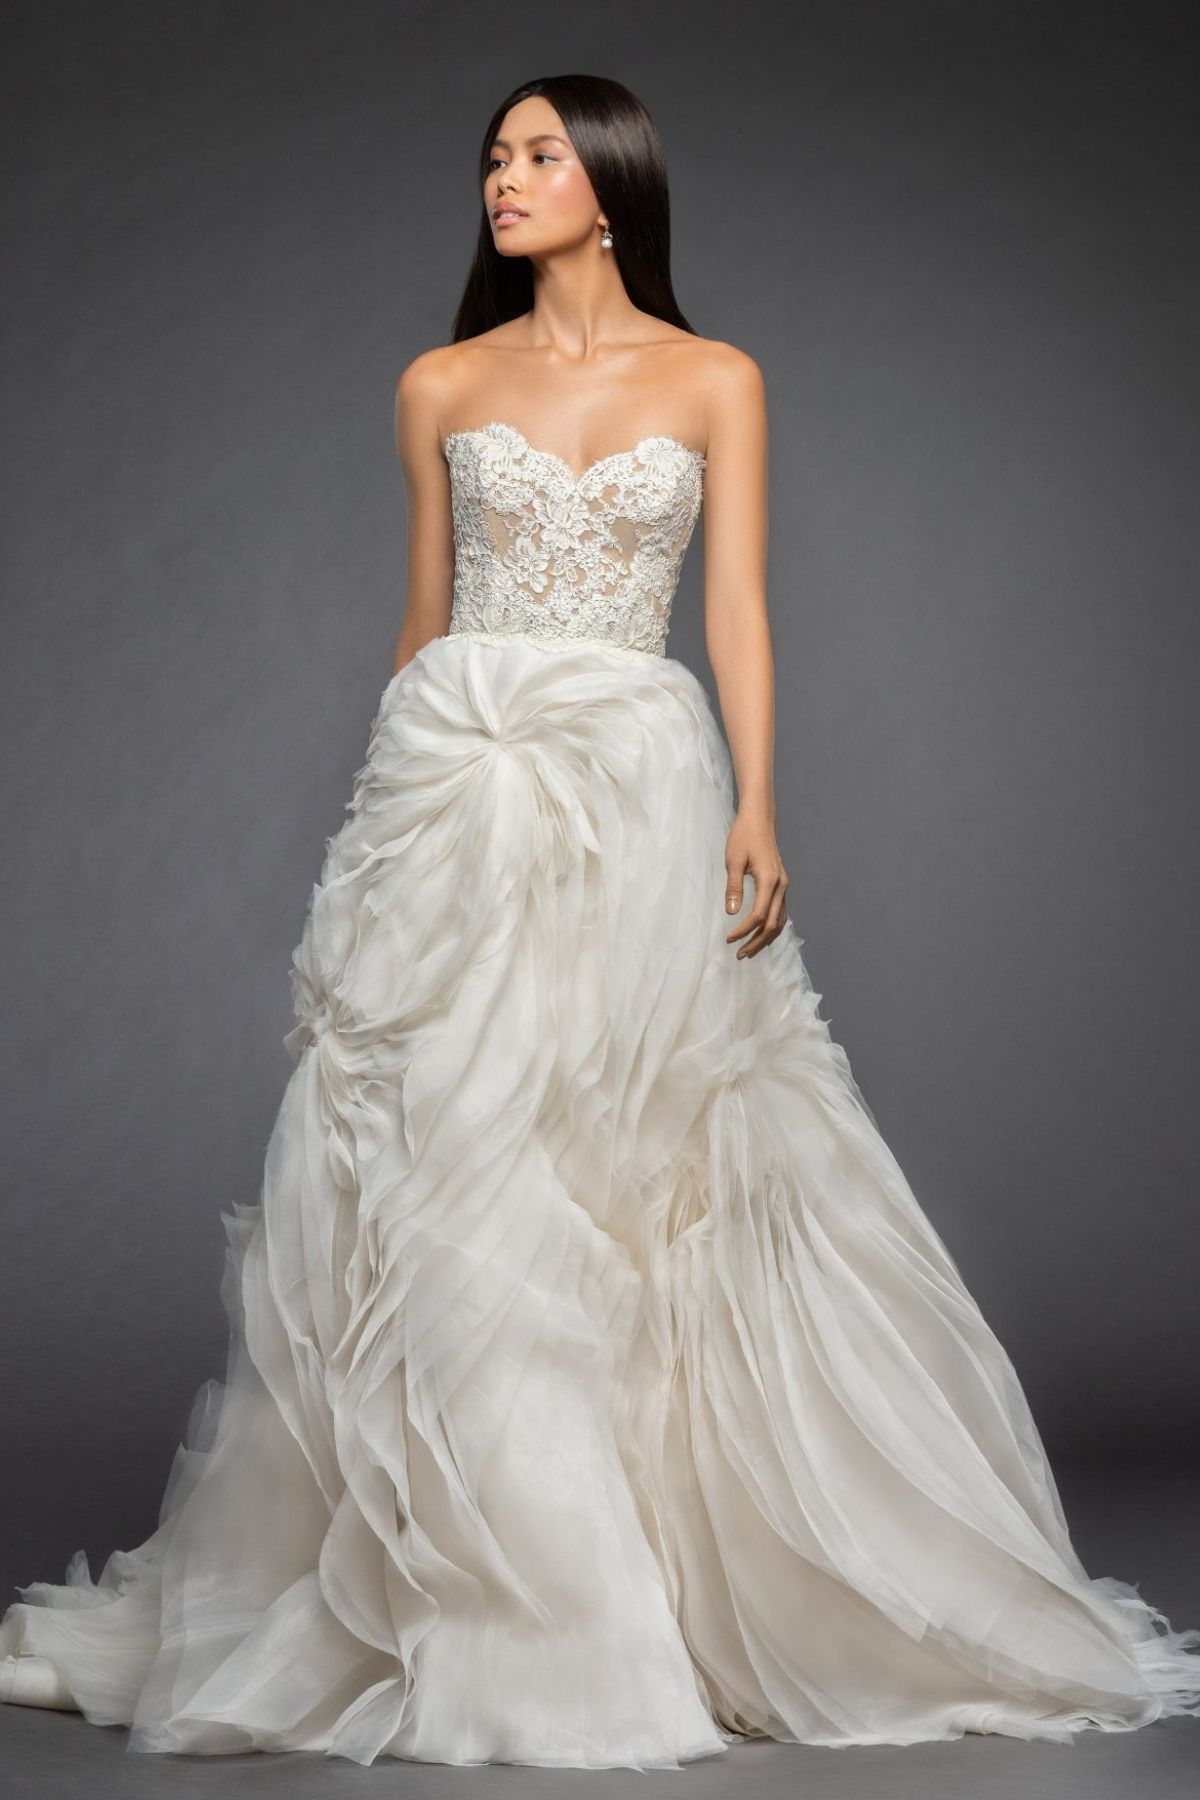 5. Lazaro Style // STRAPLESS A-LINE WEDDING DRESS WITH LACE BODICE AND TUFTED ORGANZA AND TULLE SKIRT